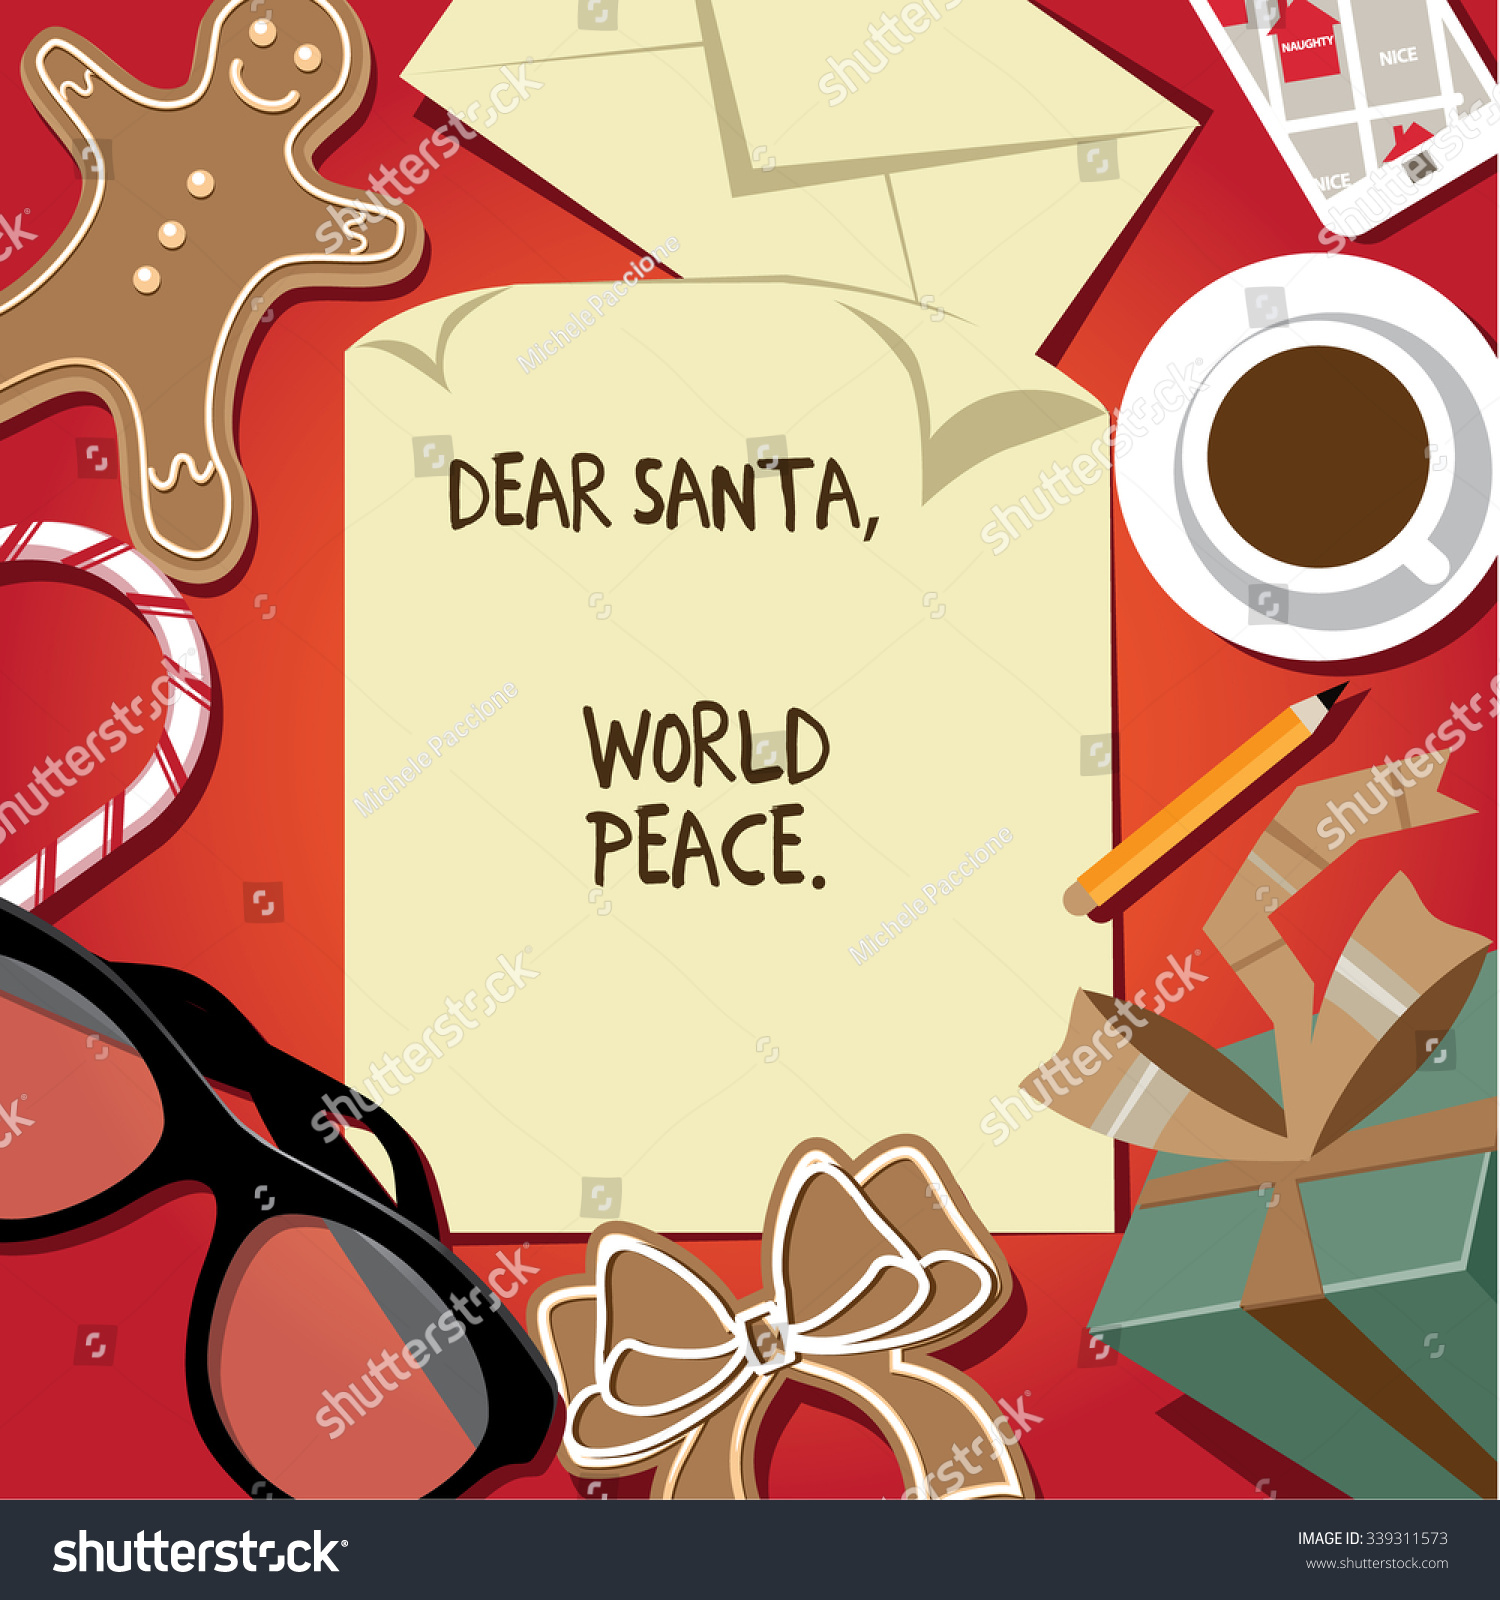 dear santa world peace letter from child on santas desk flat design eps 10